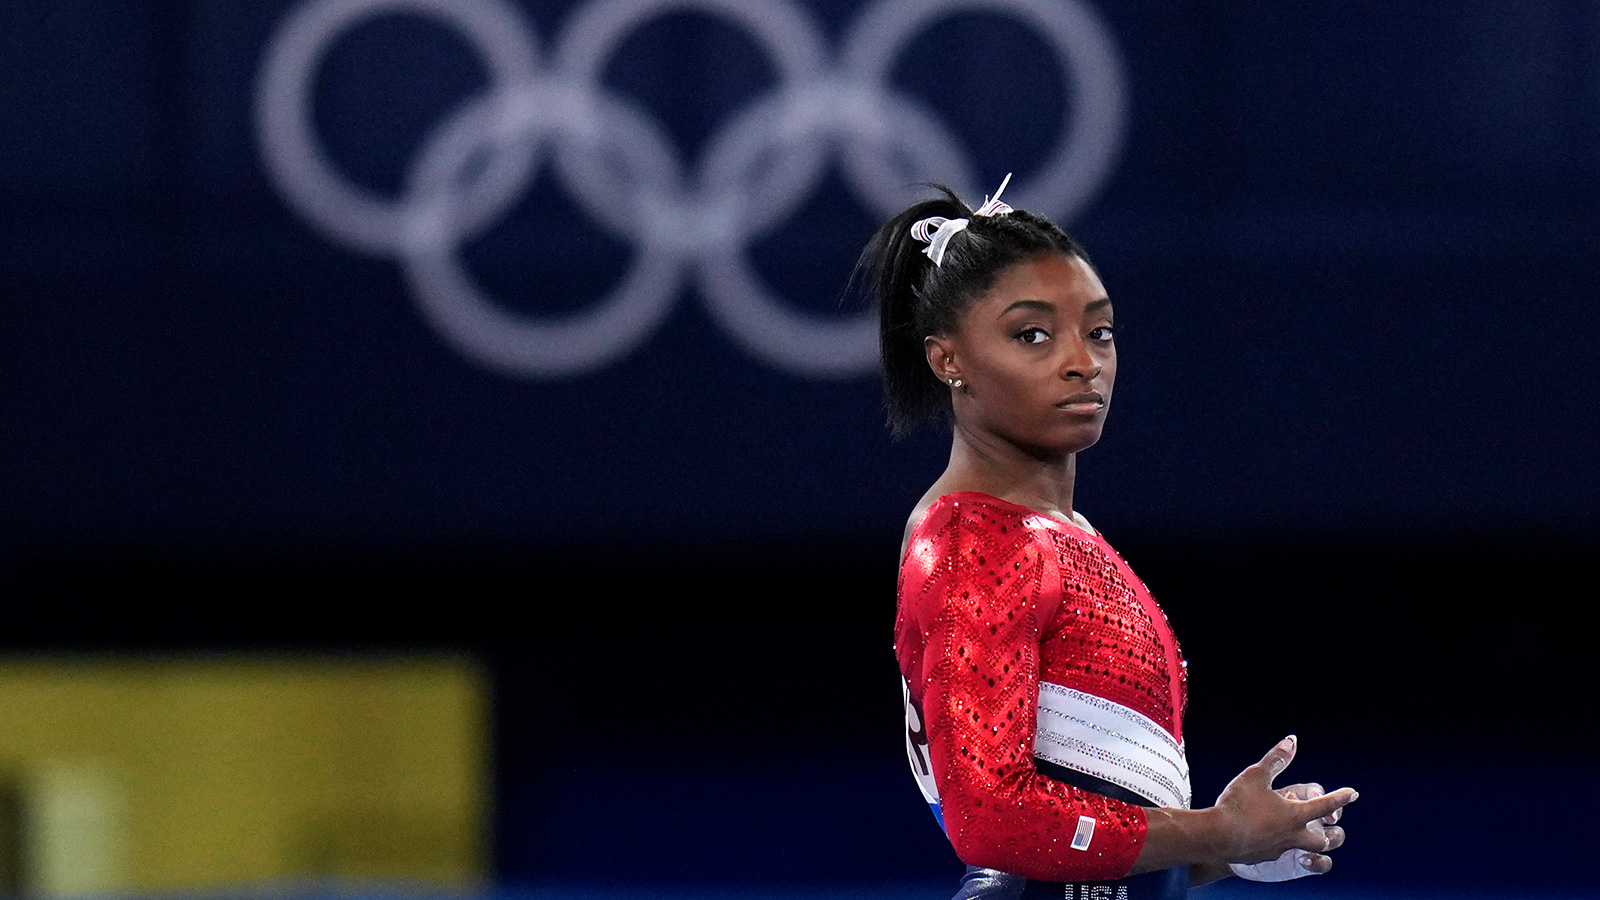 Simone Biles drops out of individual all-around competition